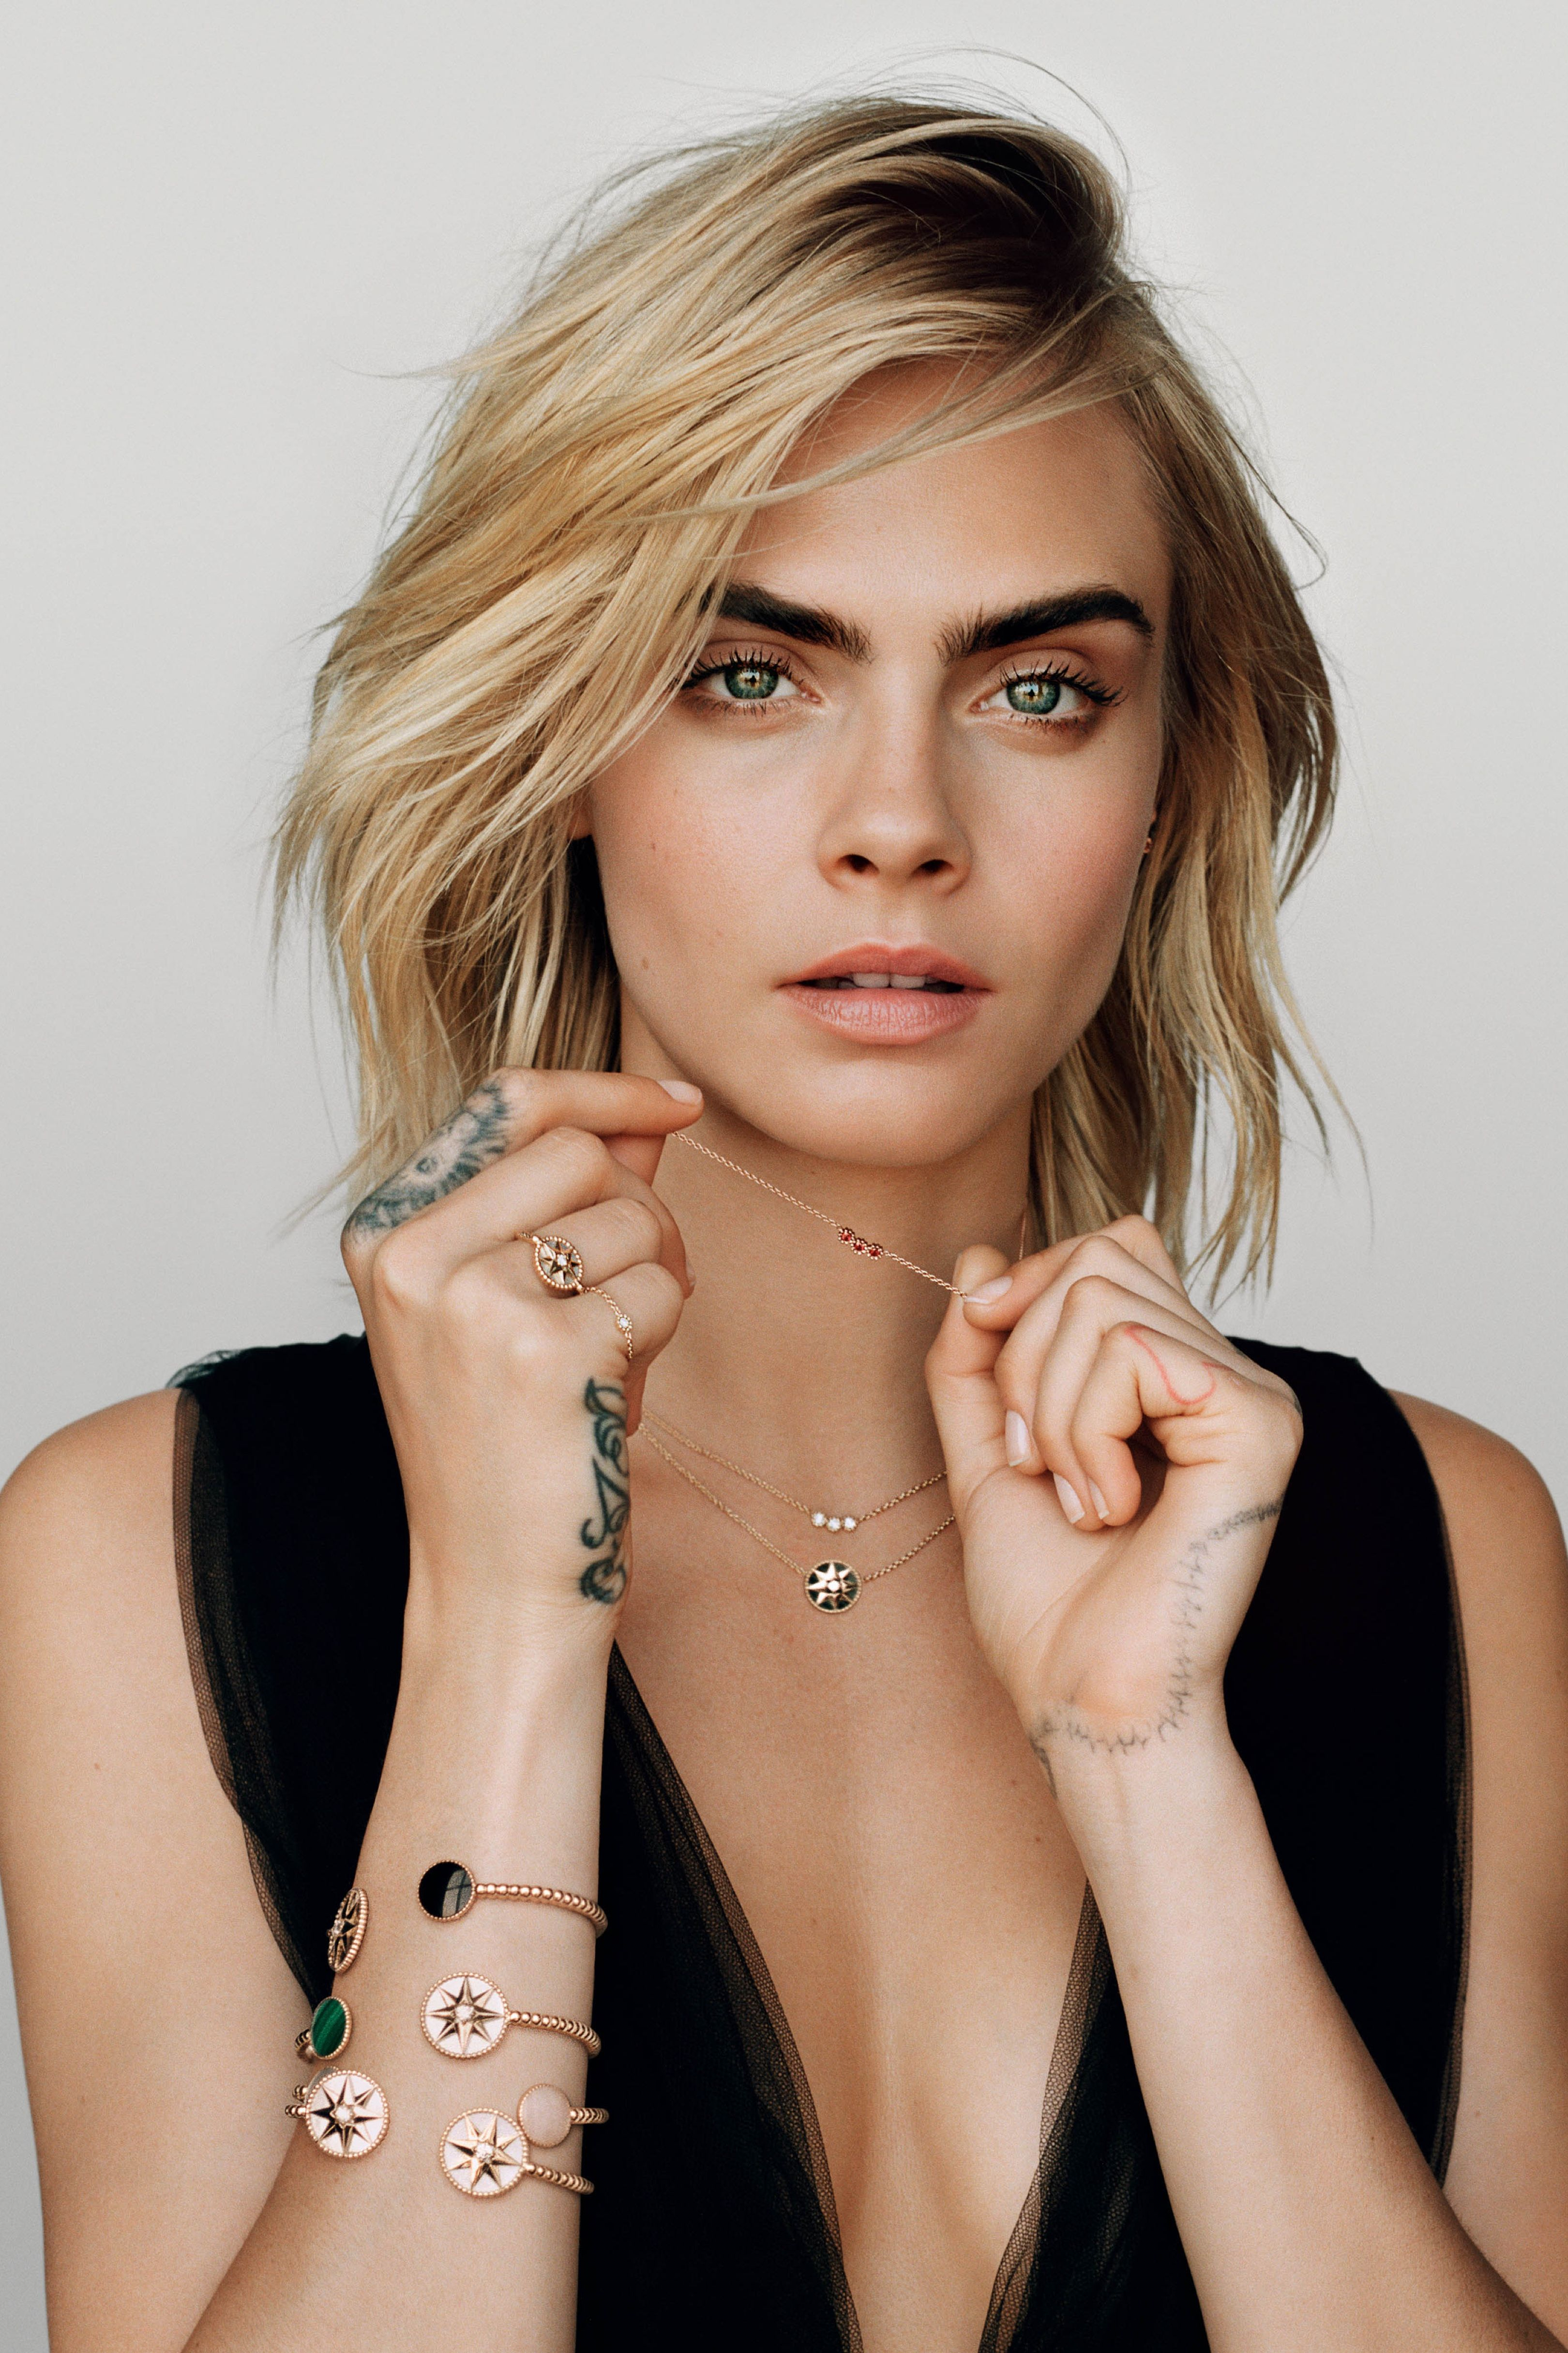 Dior Is Happy To Announce The Newest Face Of Dior Joaillerie